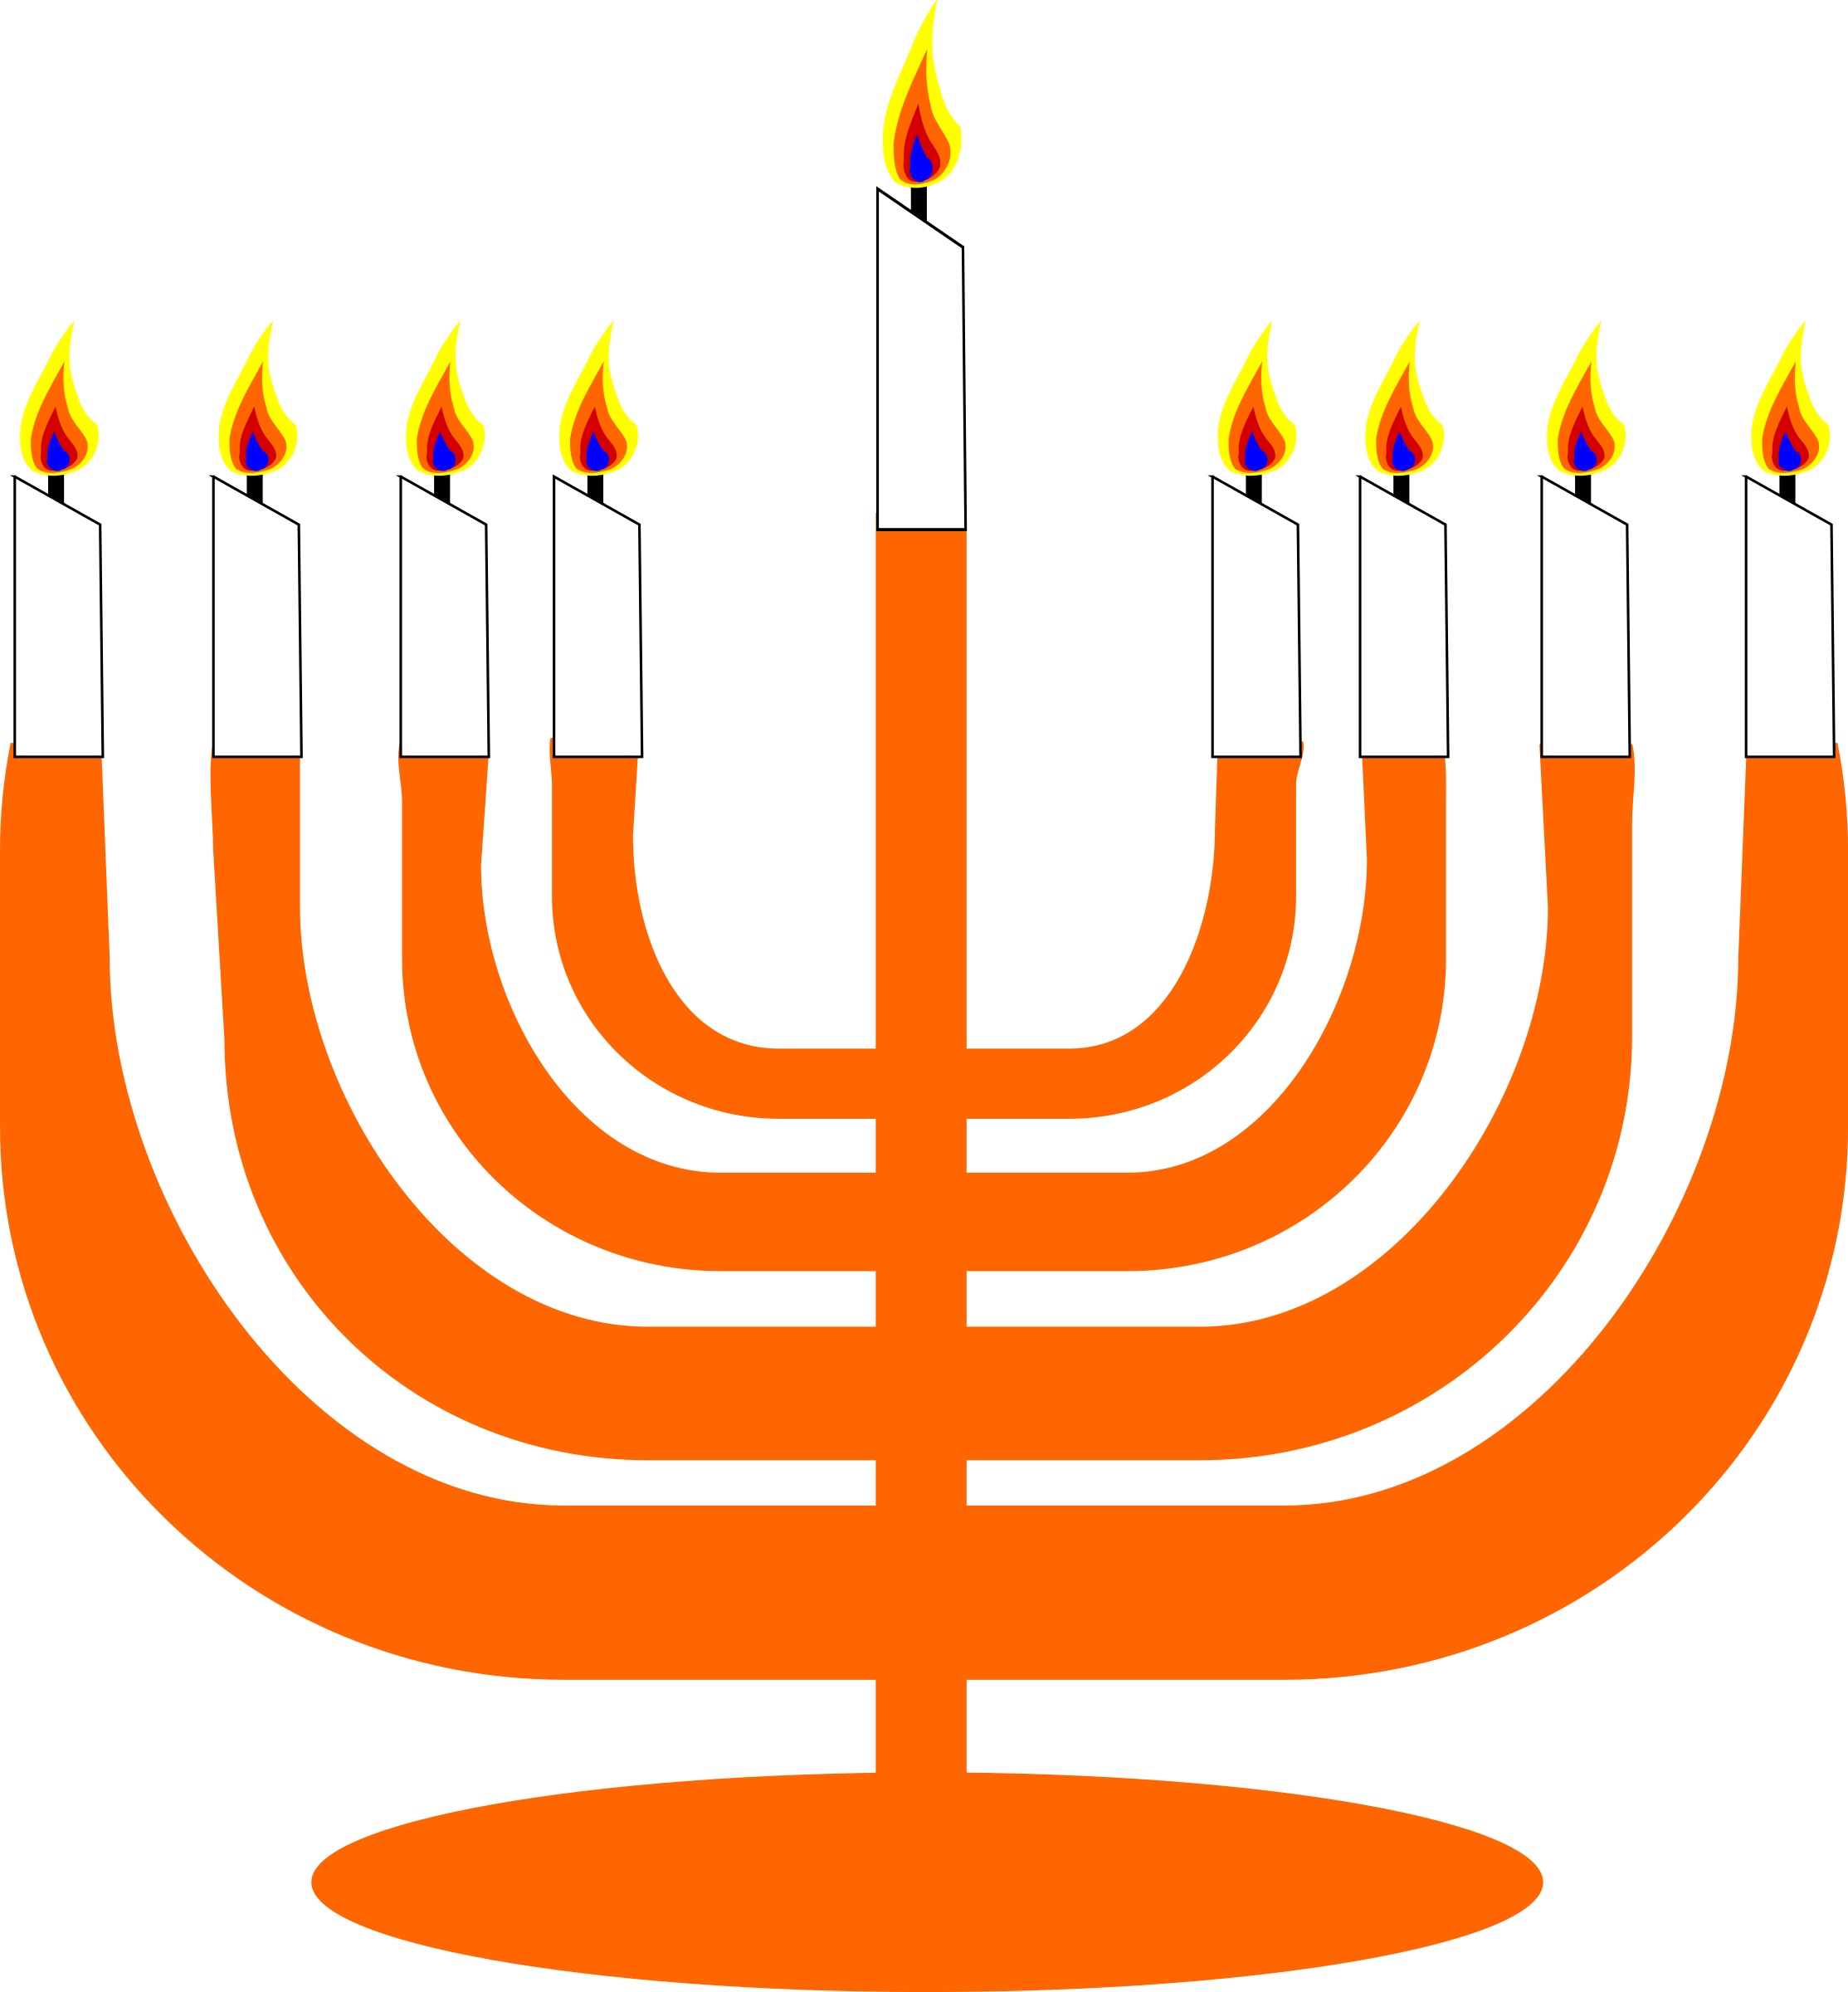 Simple Menorah For Hanukkah WIth Shamash by semjaza